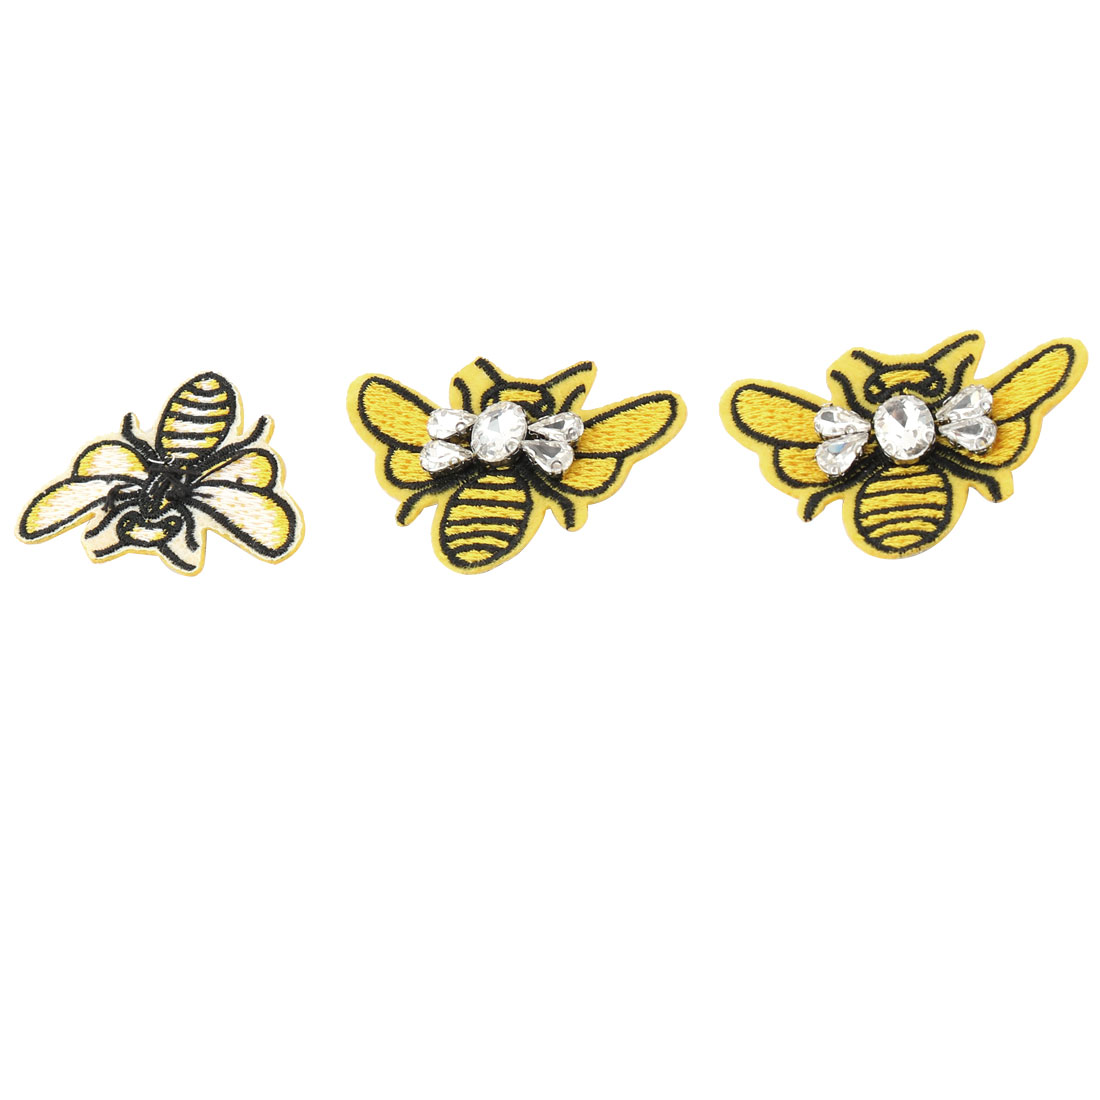 DIY Craft Fabric Bee Shaped Bag Clothes Embroidery Patches Applique Sticker 3pcs